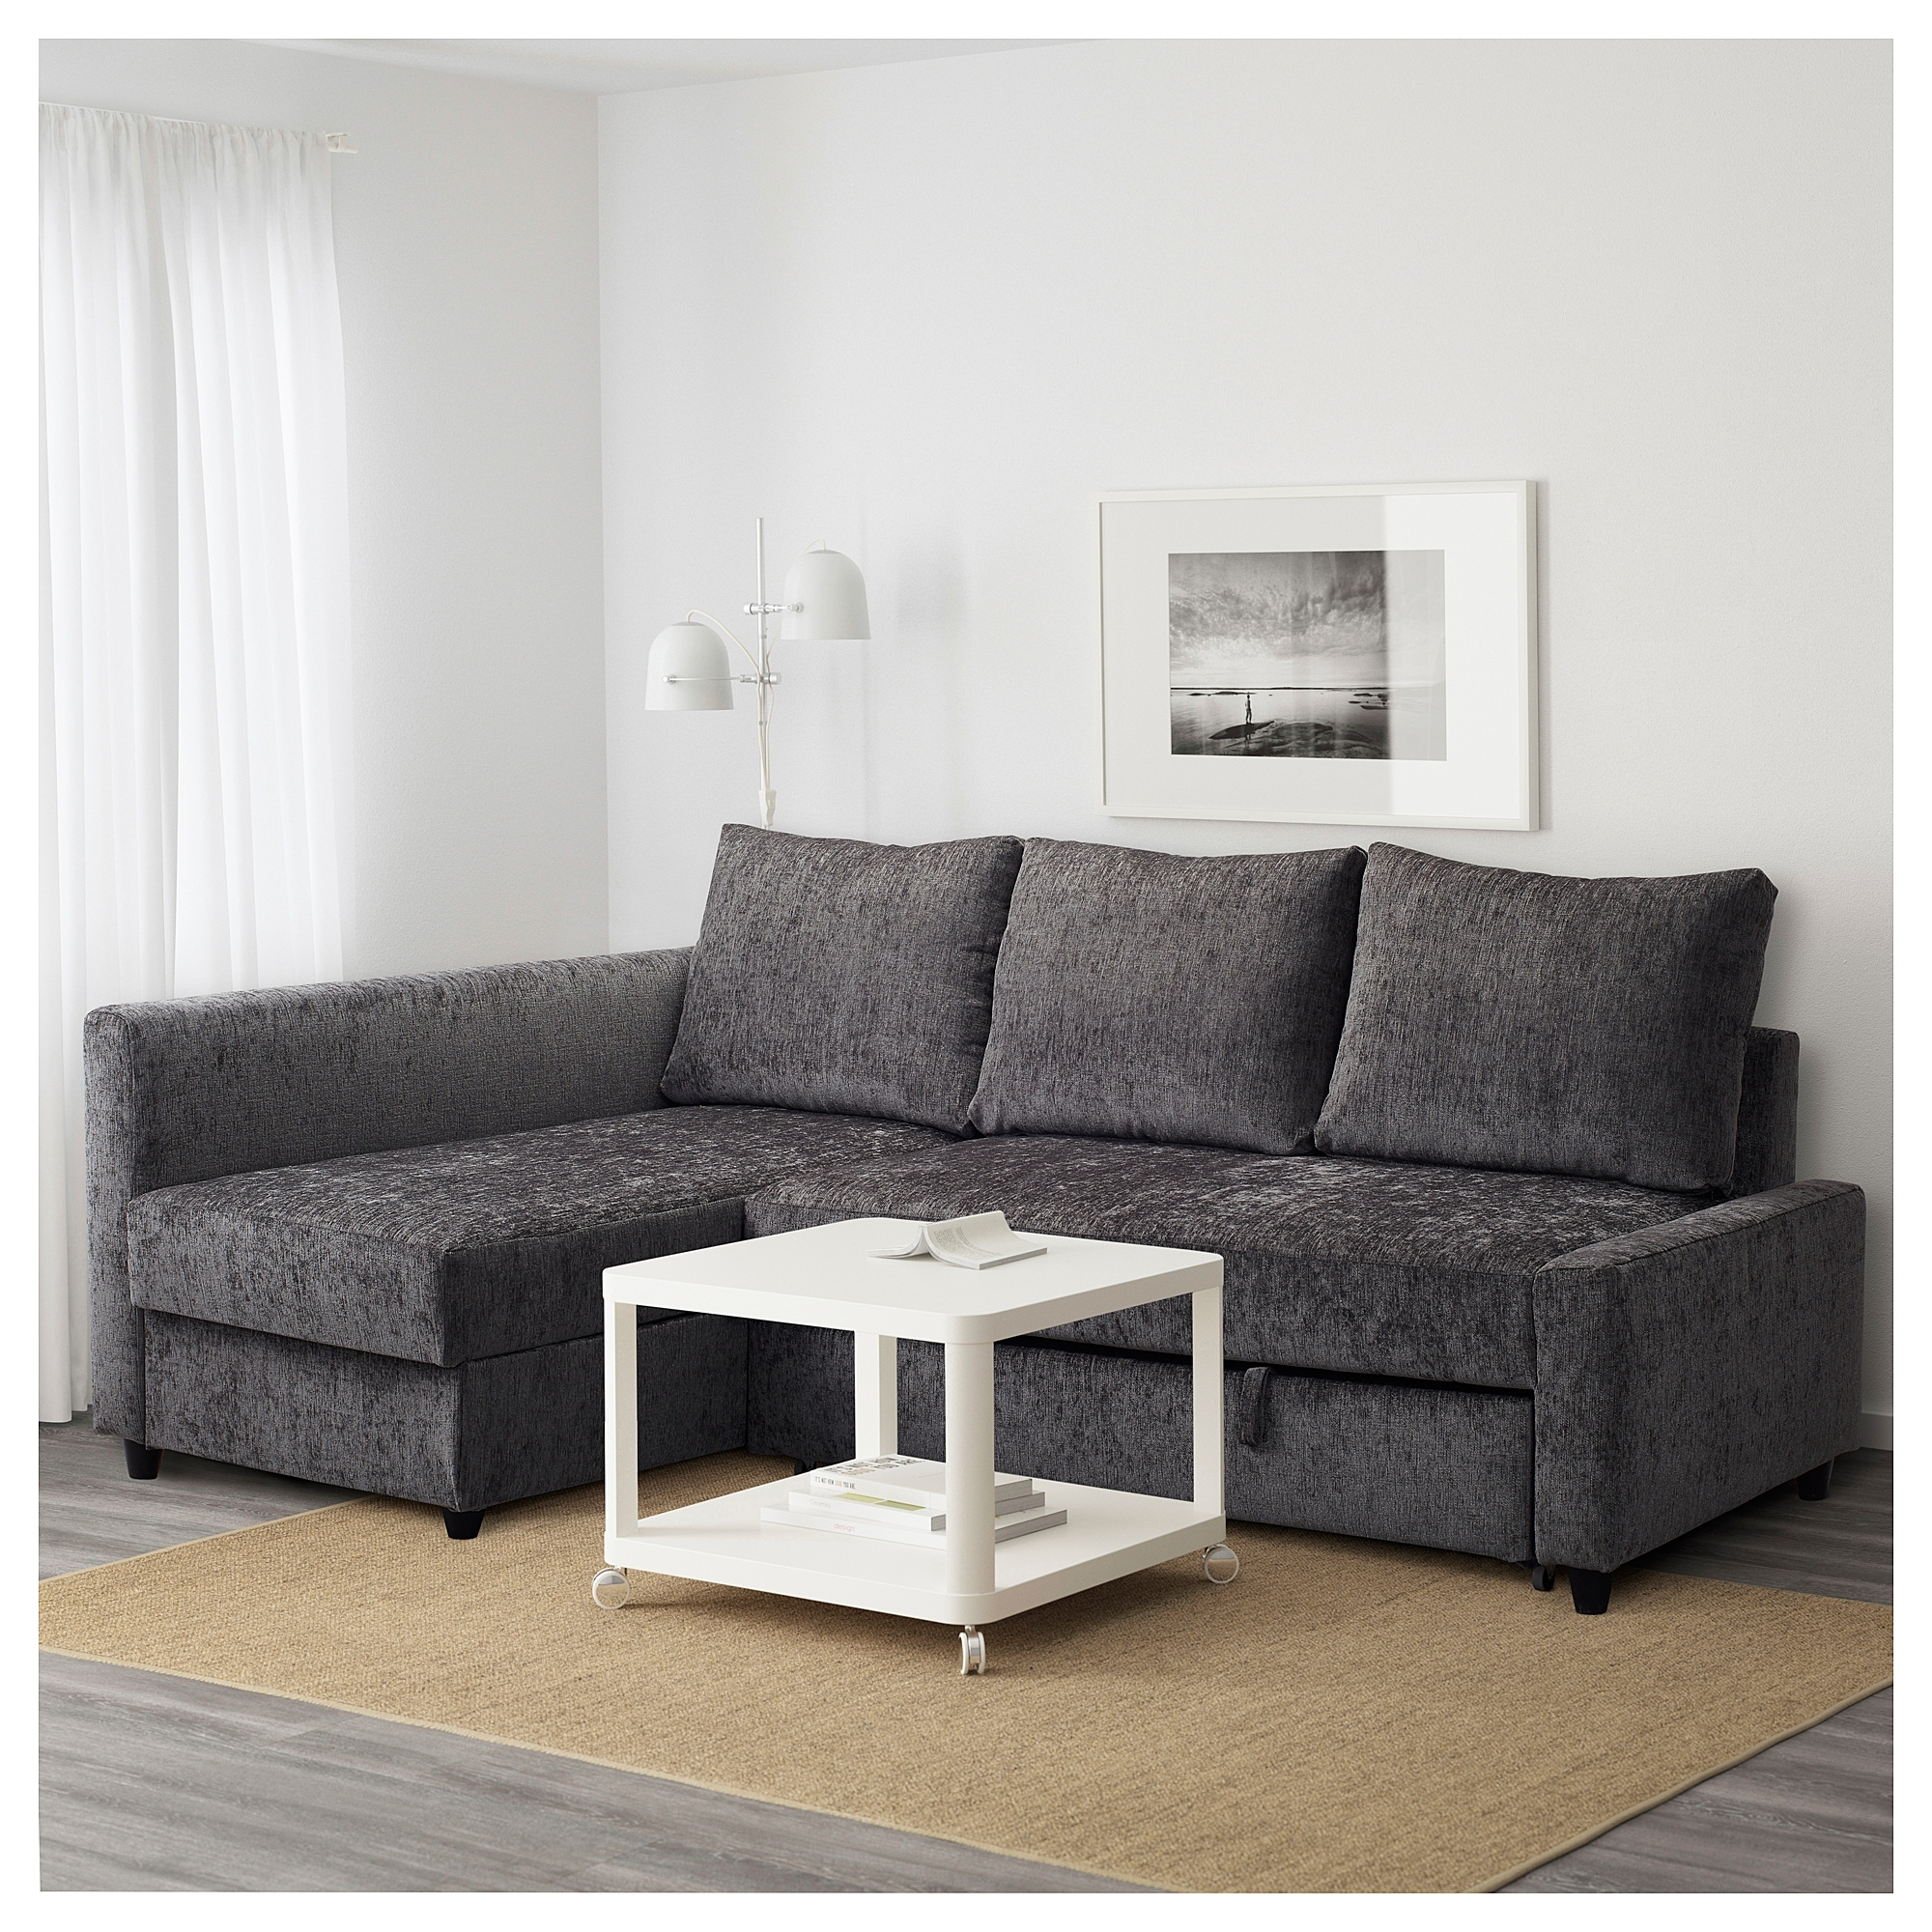 Friheten Corner Sofa Bed With Storage Dark Grey – Ikea With Ikea Corner Sofas With Storage (View 6 of 10)